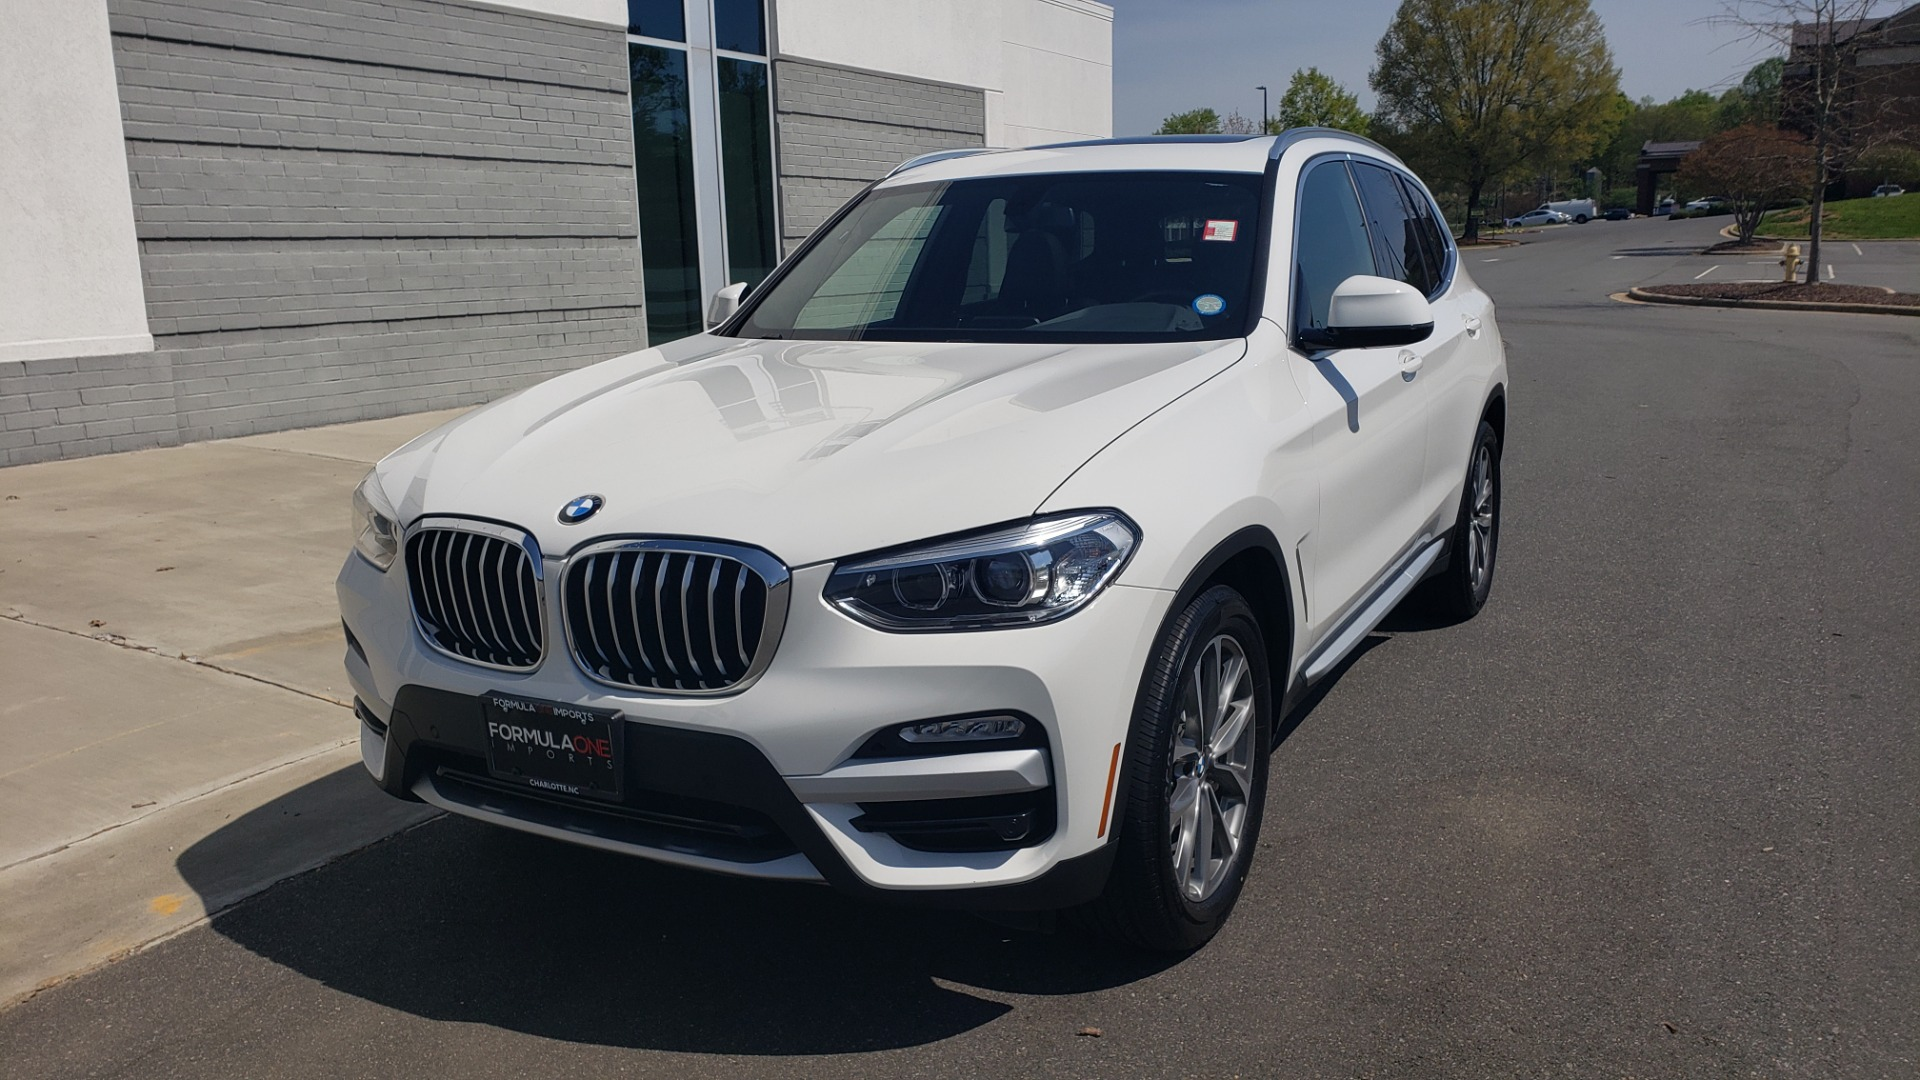 Used 2018 BMW X3 XDRIVE30I / CONV PKG / PANO-ROOF / HTD STS / REARVIEW for sale $33,995 at Formula Imports in Charlotte NC 28227 3